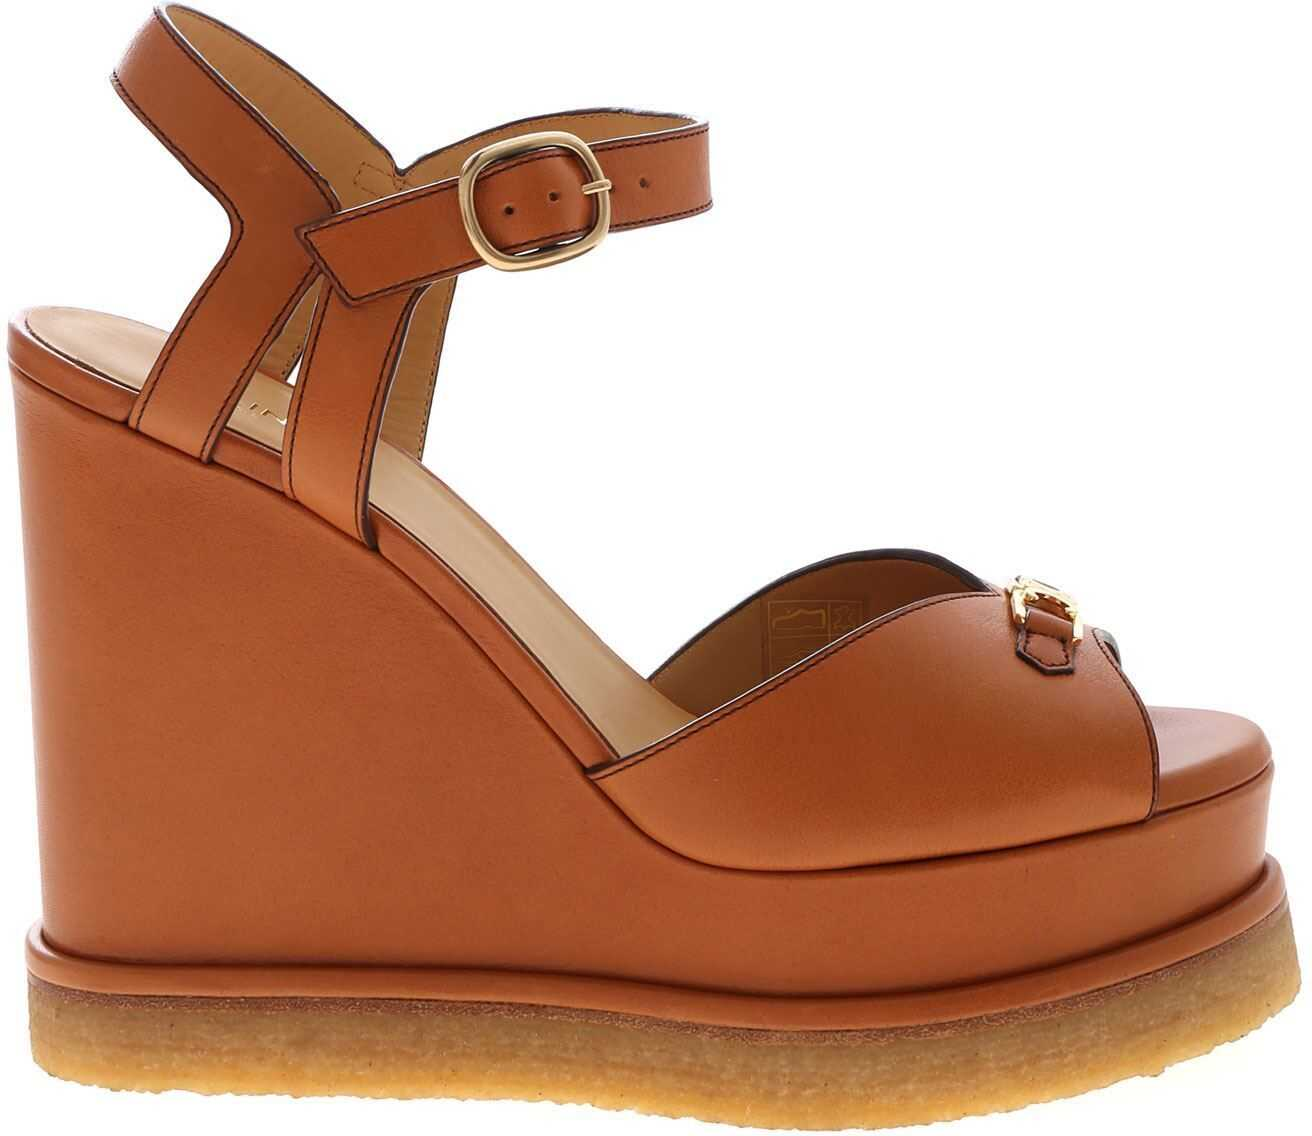 Céline Golden Logo Open Toe Sandals In Brown Brown